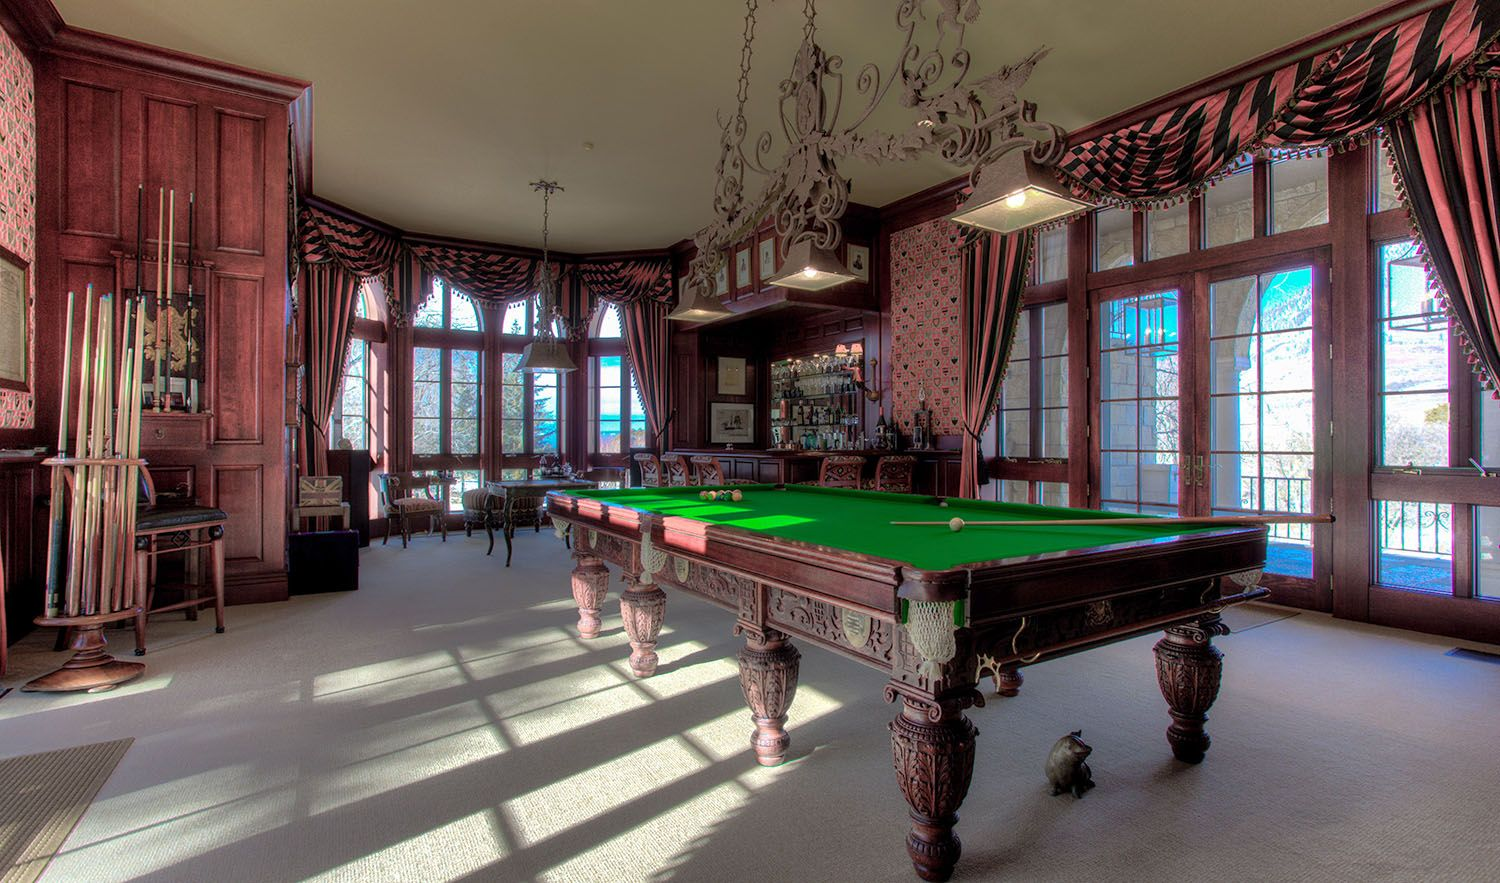 Joe Cocker Estate: Billiard Room - The Billiard Room features two sets of French doors that open to both the front and back patios, offering indoor-to-outdoor entertaining.